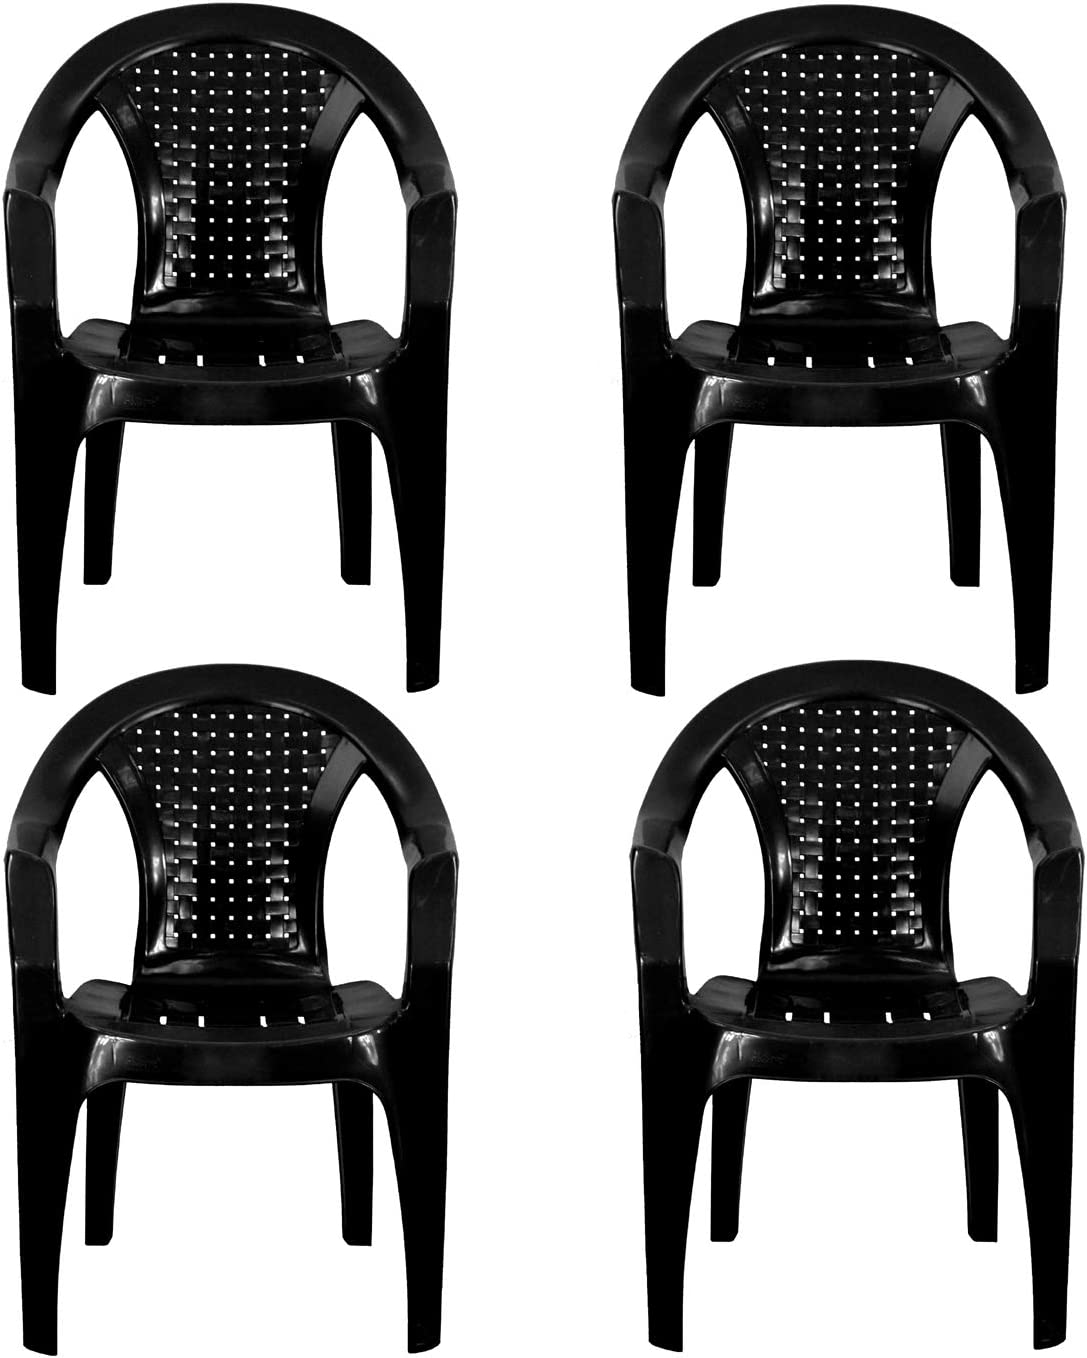 Plastic Garden Chairs - BLACK Set of 10 - Stackable with Woven